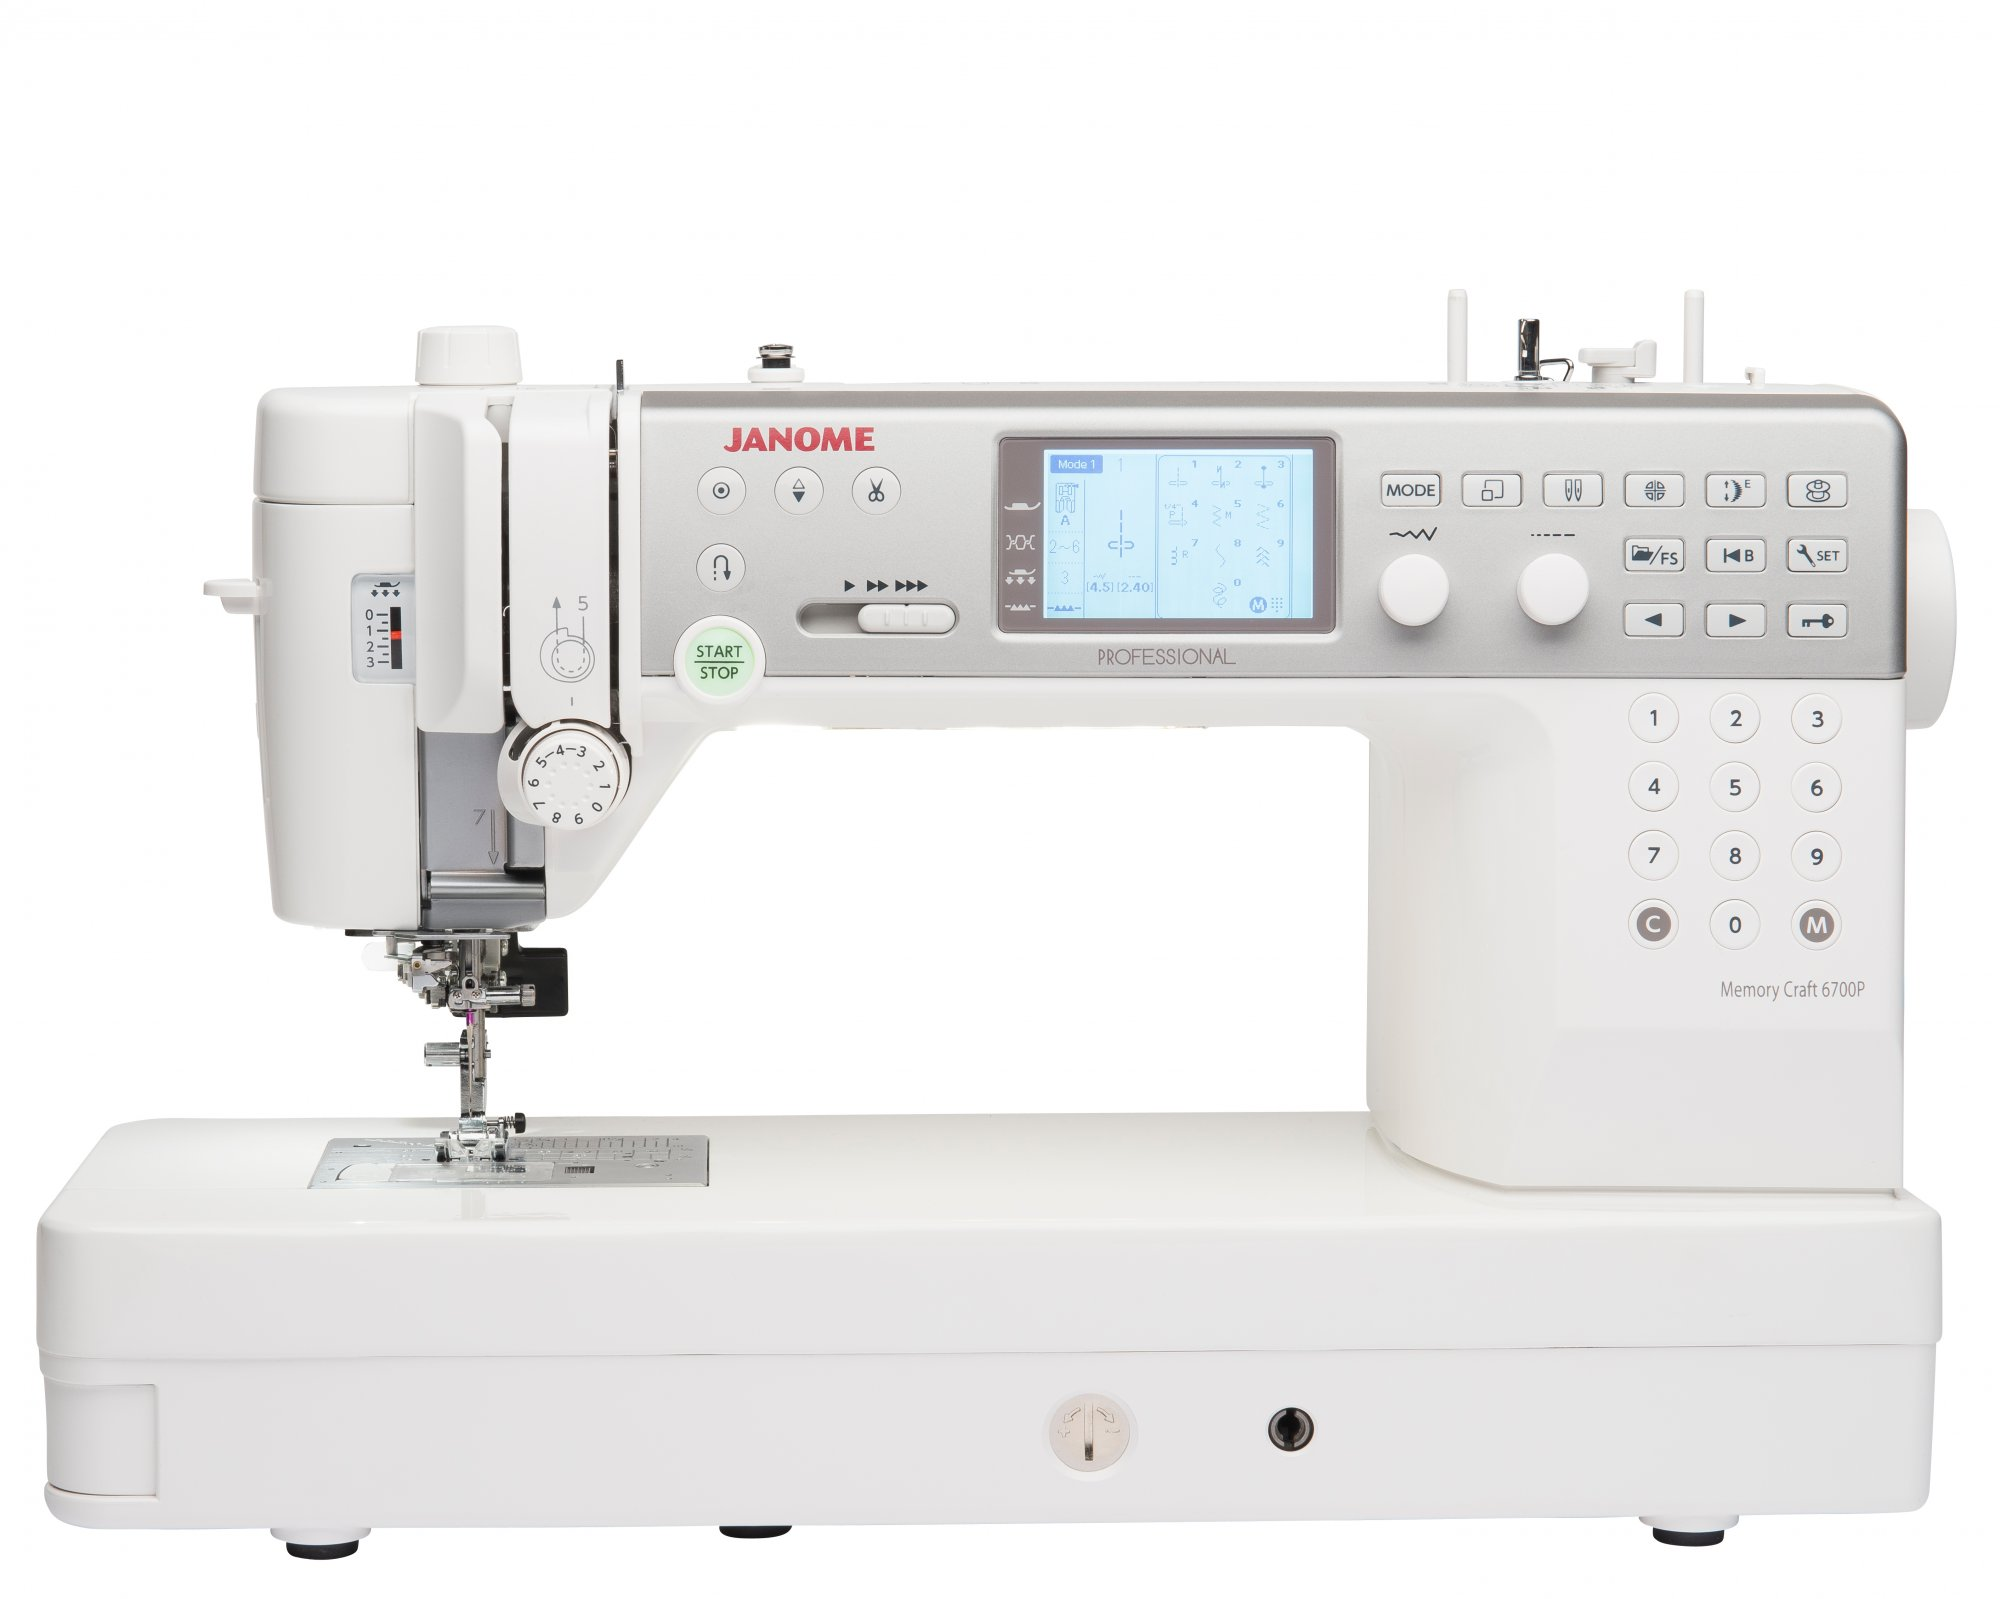 friends skyline main center among quilting web janome sergers htm embroidery at sewing and quilt machines machine